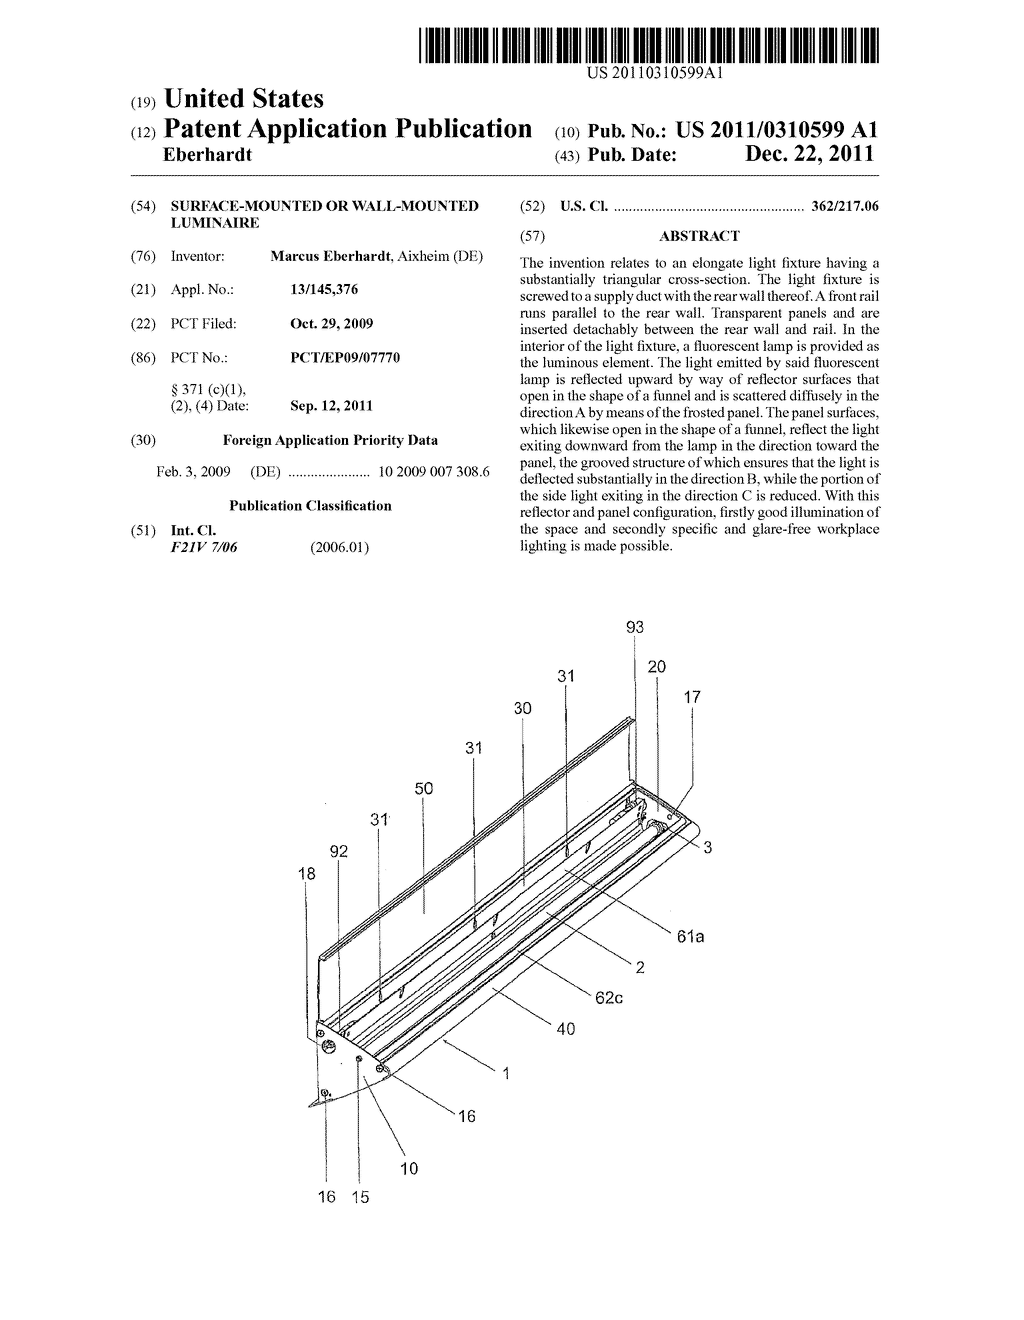 SURFACE-MOUNTED OR WALL-MOUNTED LUMINAIRE - diagram, schematic, and image 01